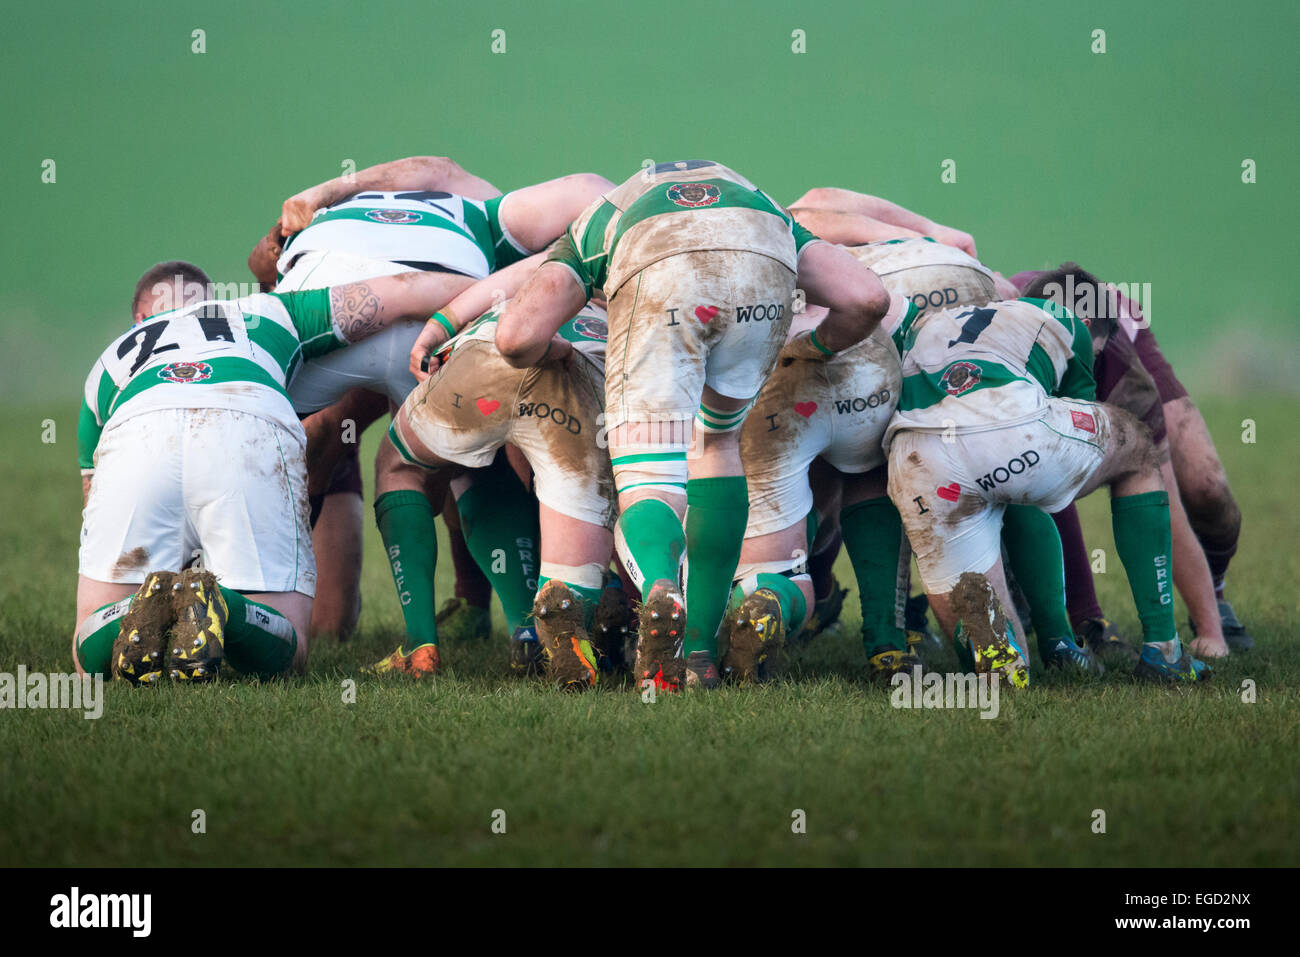 Rugby scrummage. - Stock Image